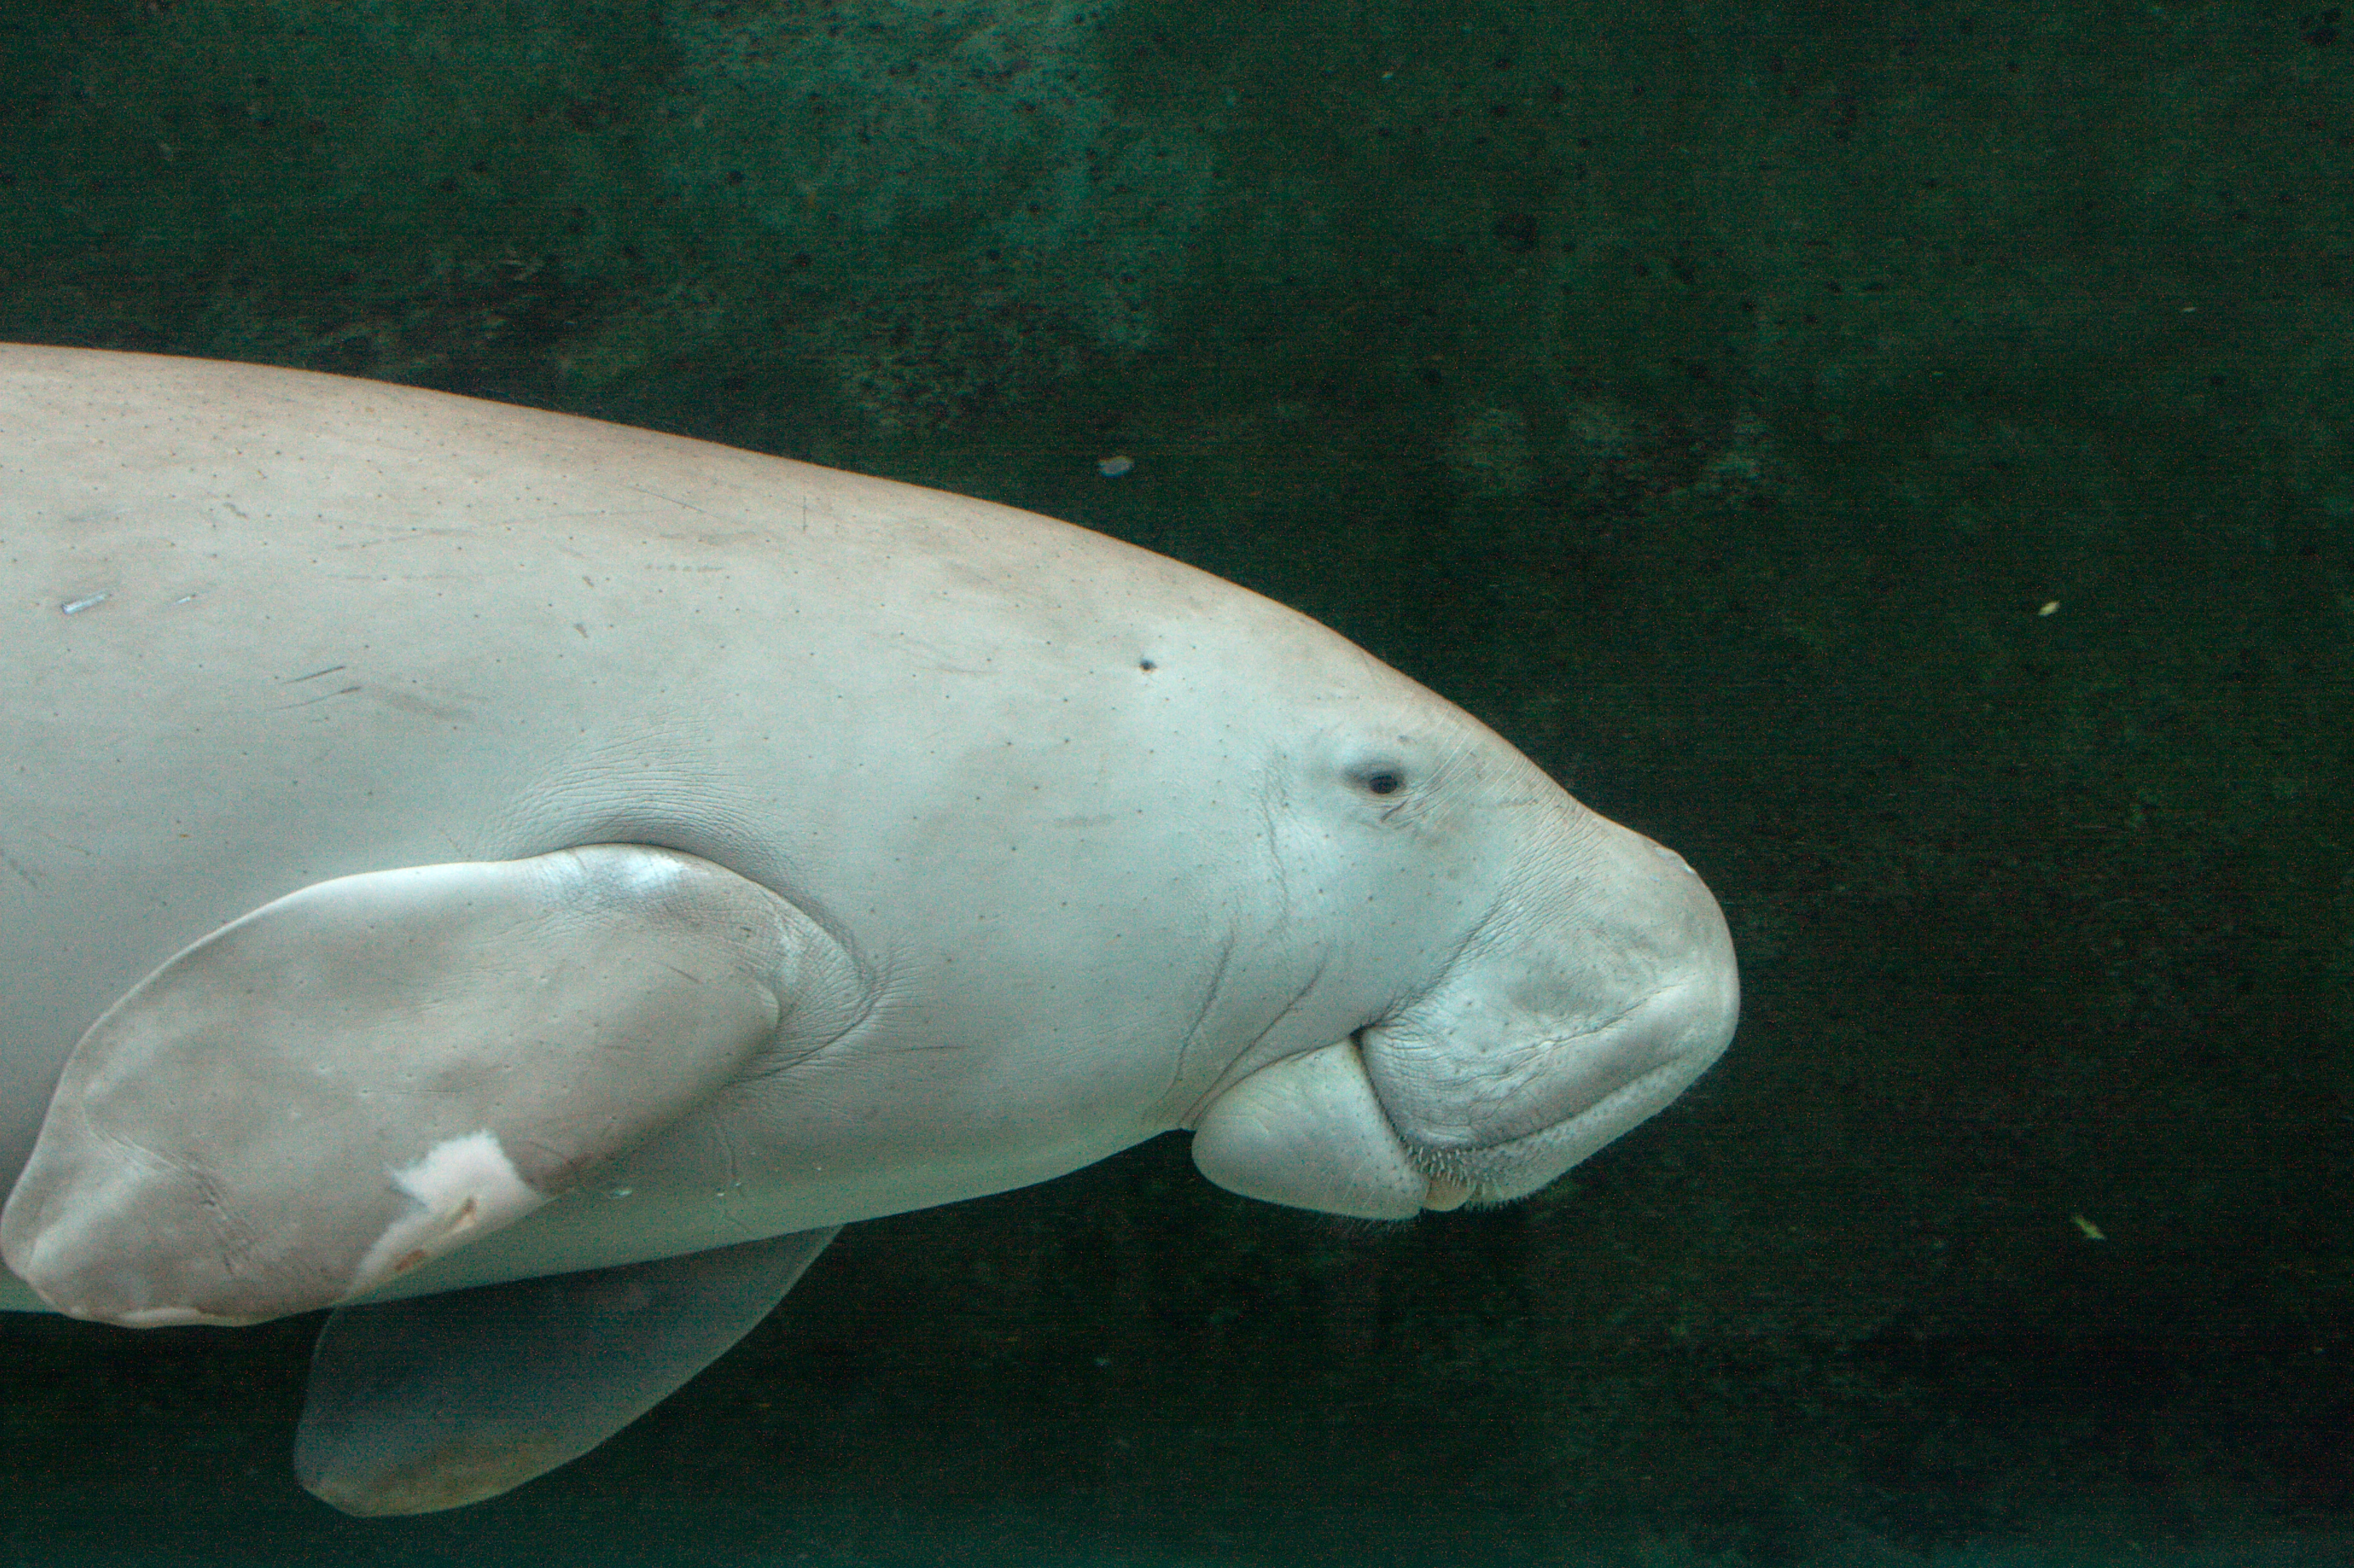 D is for Dugong   lizbrownlee - poet   3900 x 2598 jpeg 5453kB